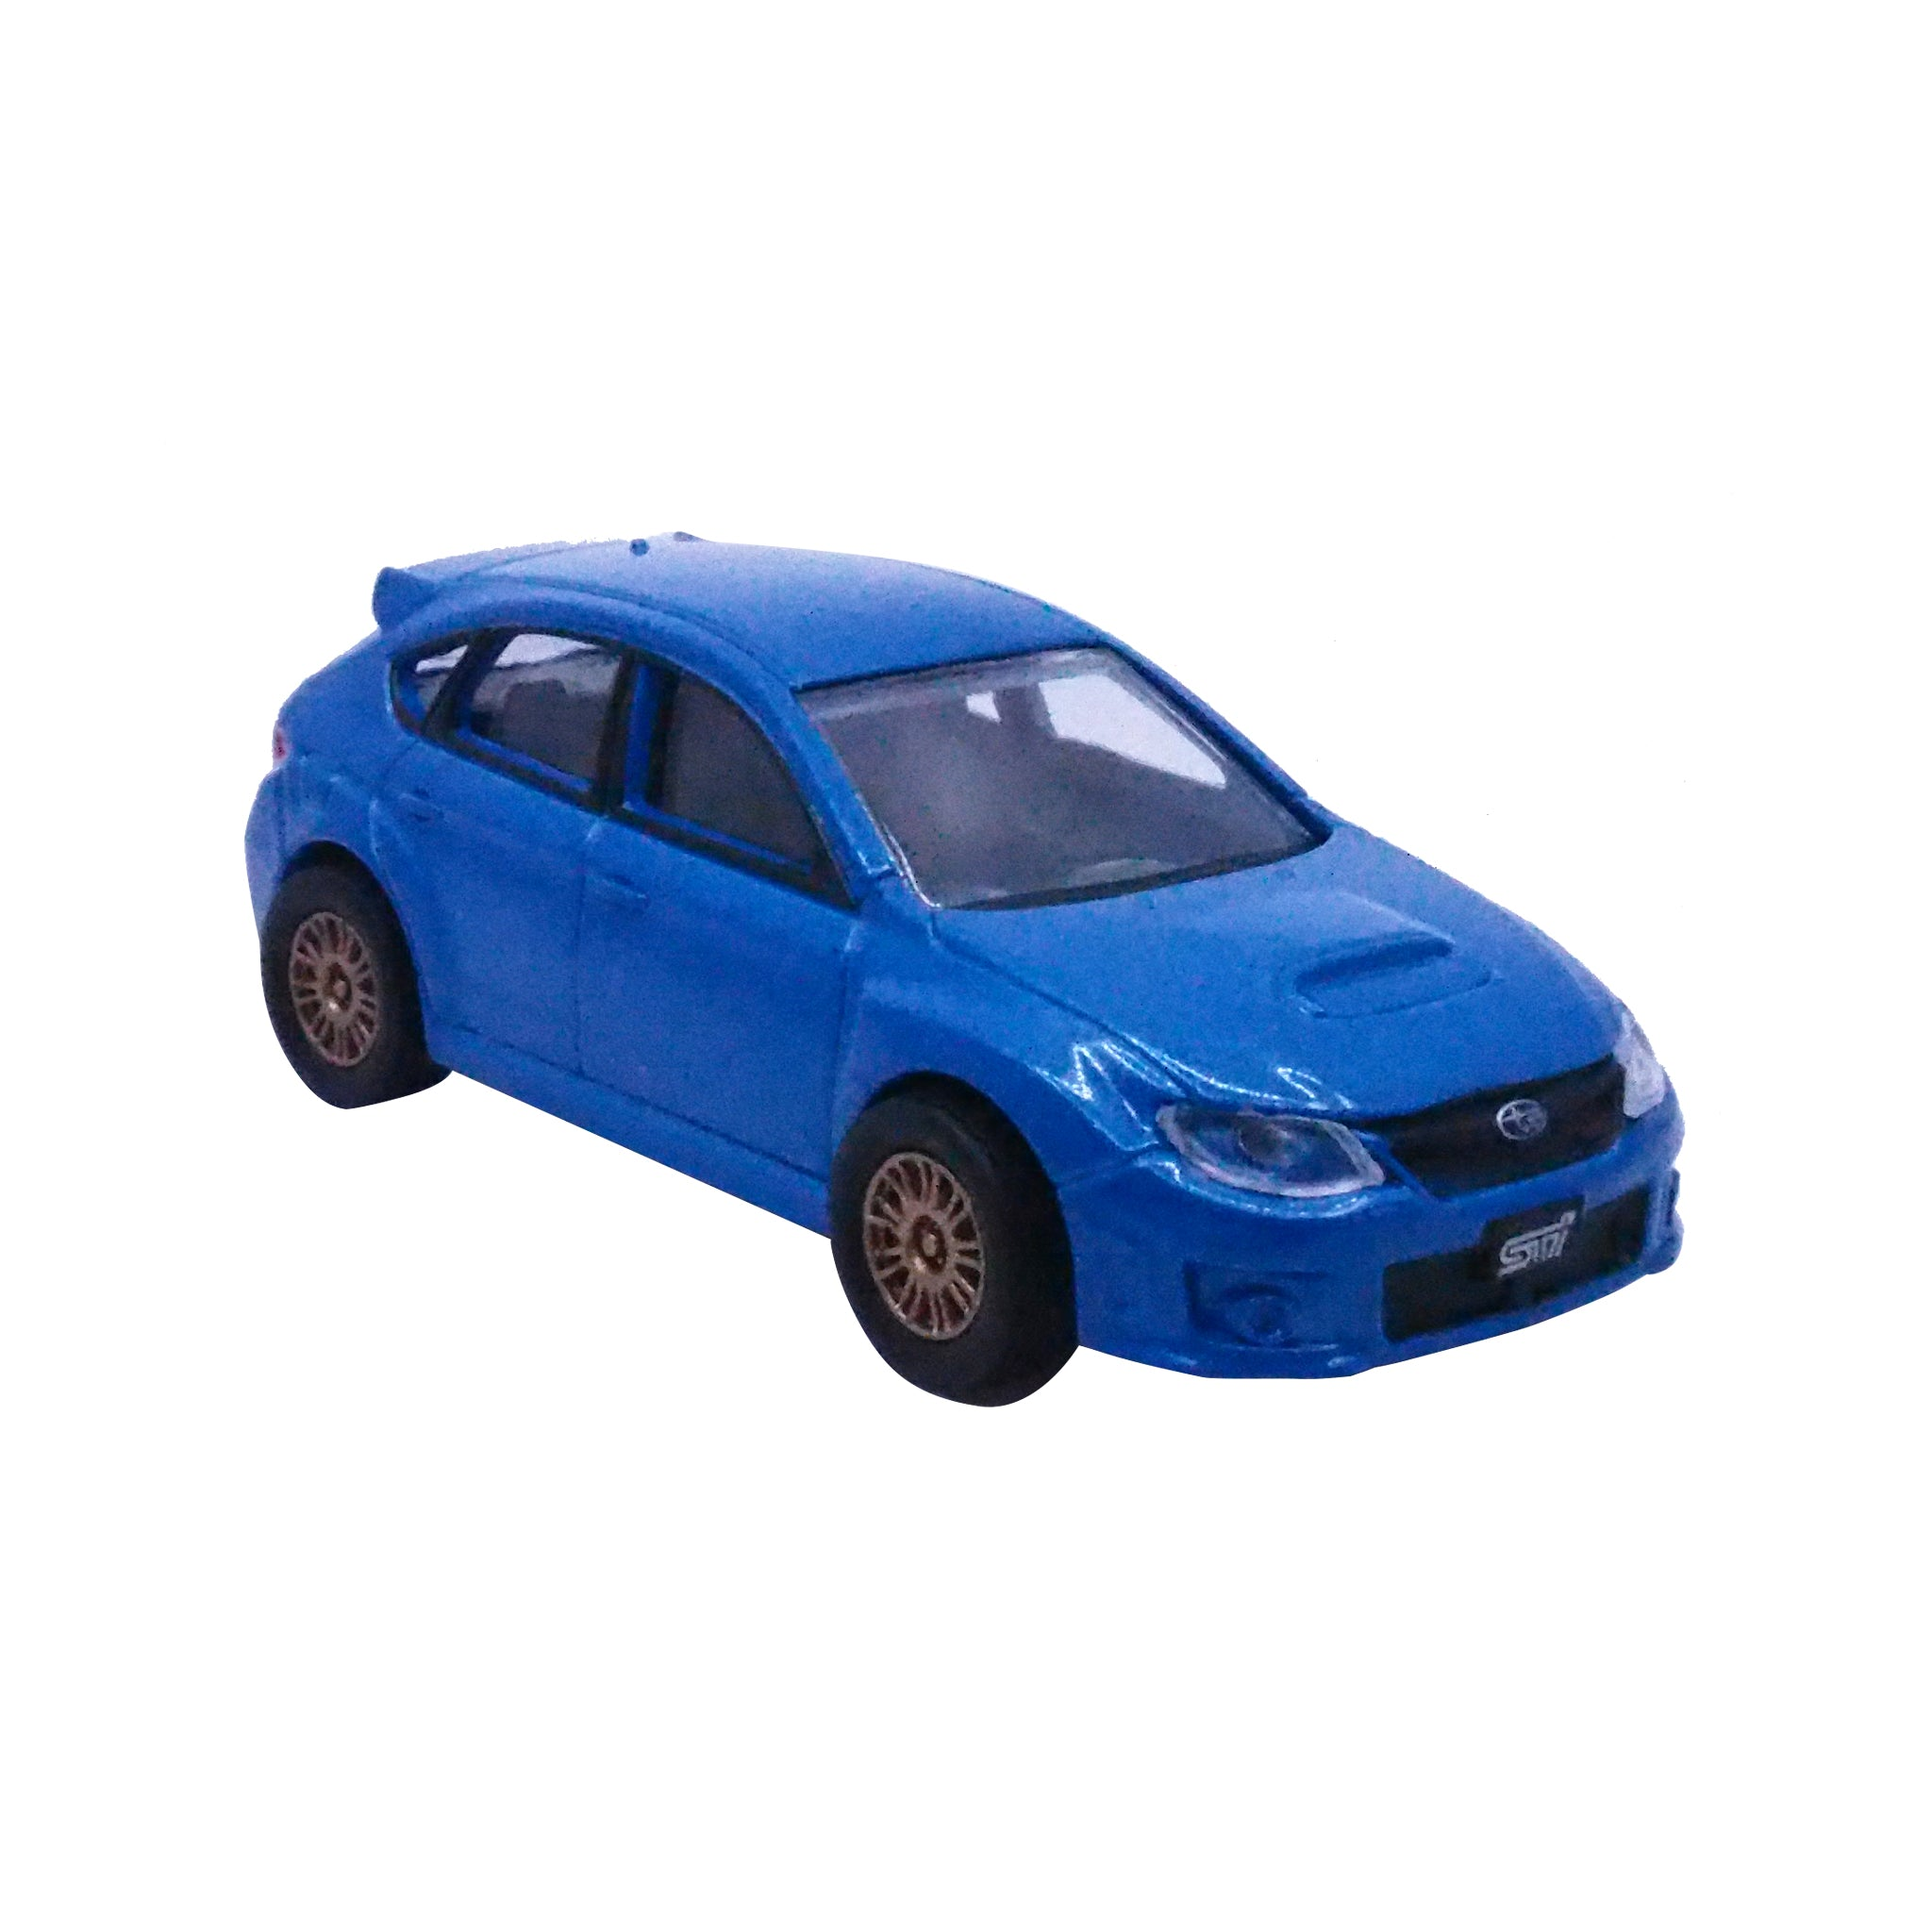 Subaru STI Diecast Model Car 2008